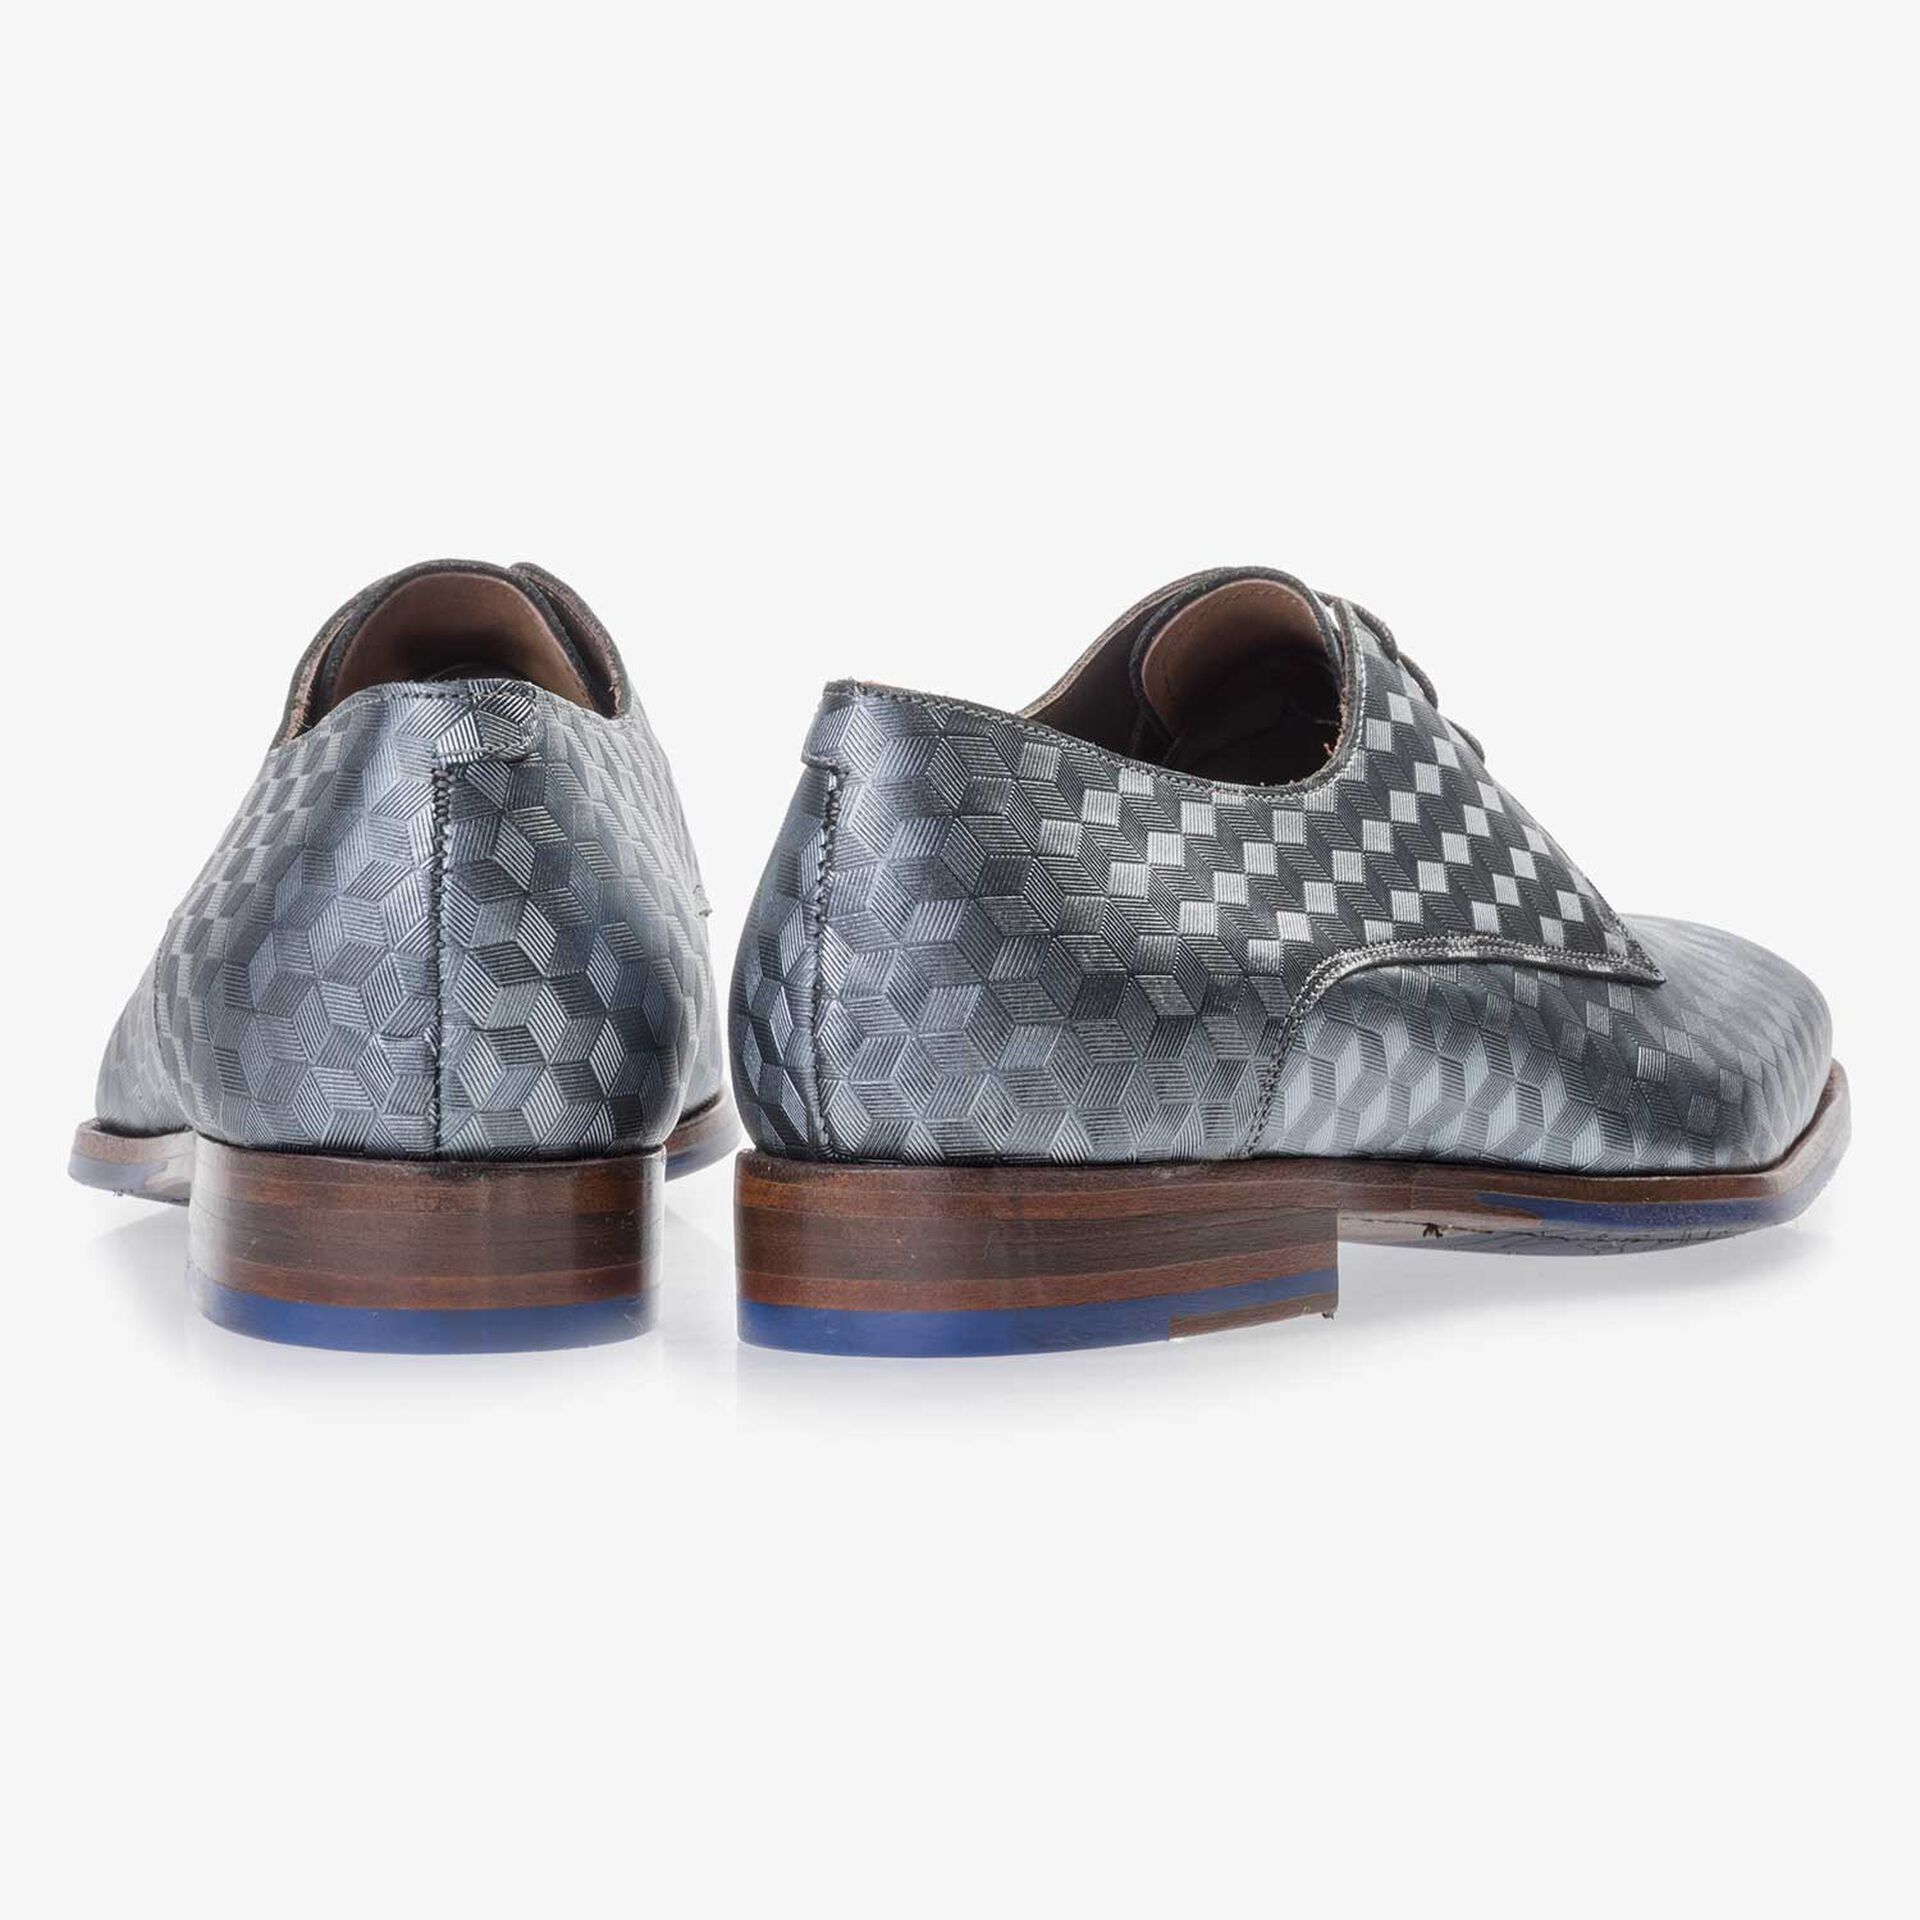 Grey leather lace shoe finished with a hexagon print